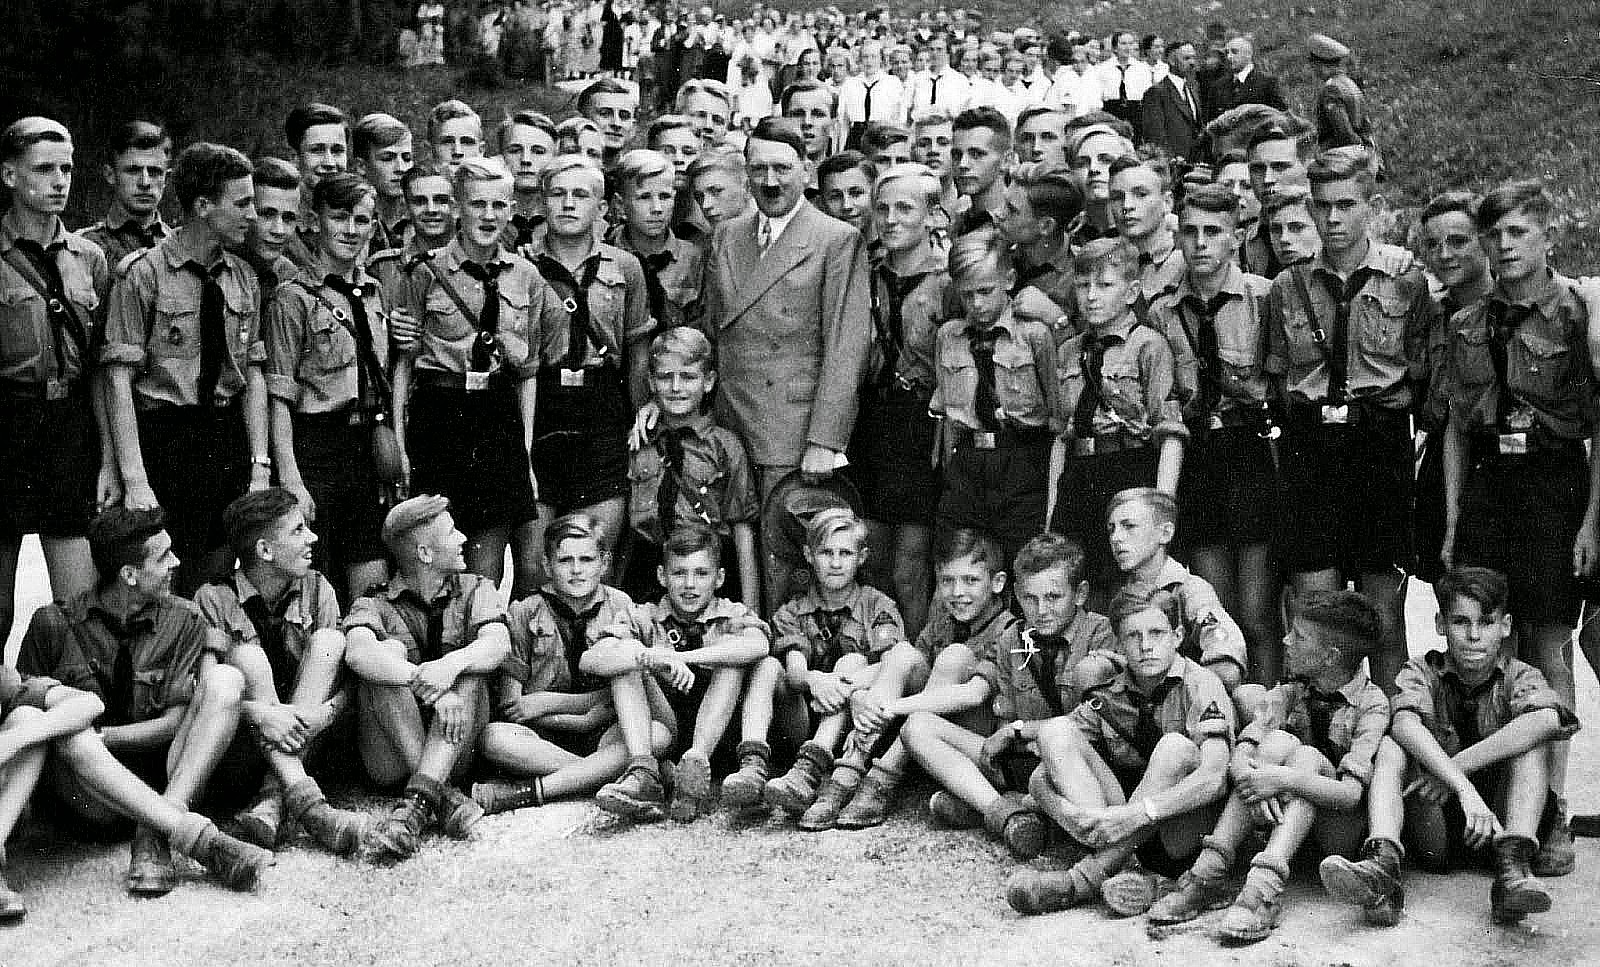 an introduction to the history of the hitler youth movement Hitler research paper (first draft) organizations for children from ages 6 to 18 that included the hitler youth for history ch - 3 nazism and the rise of hitler.